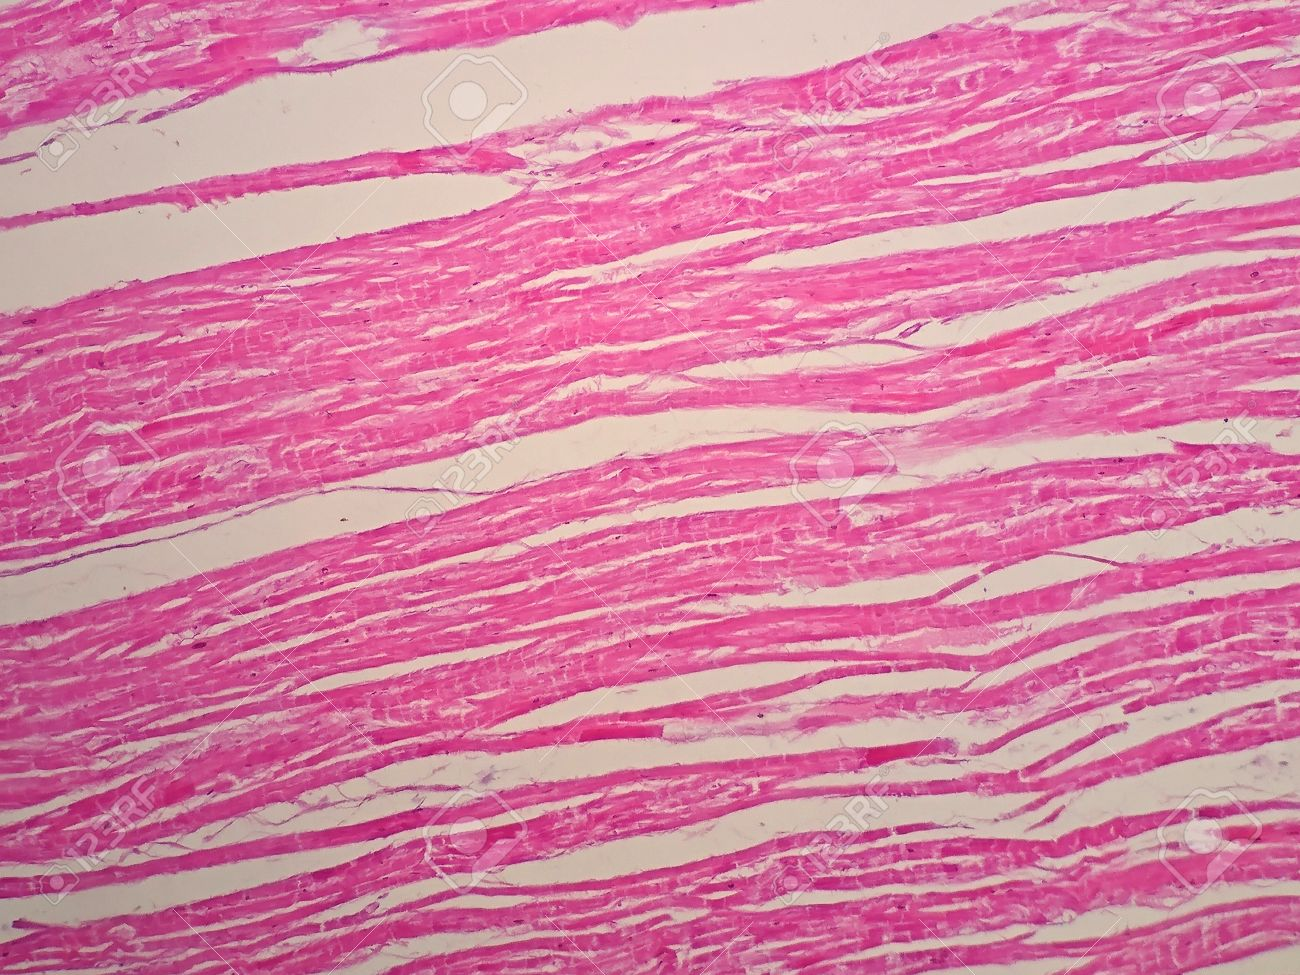 Histology Of Cardiac Muscle Under Microscope View Stock Photo ...